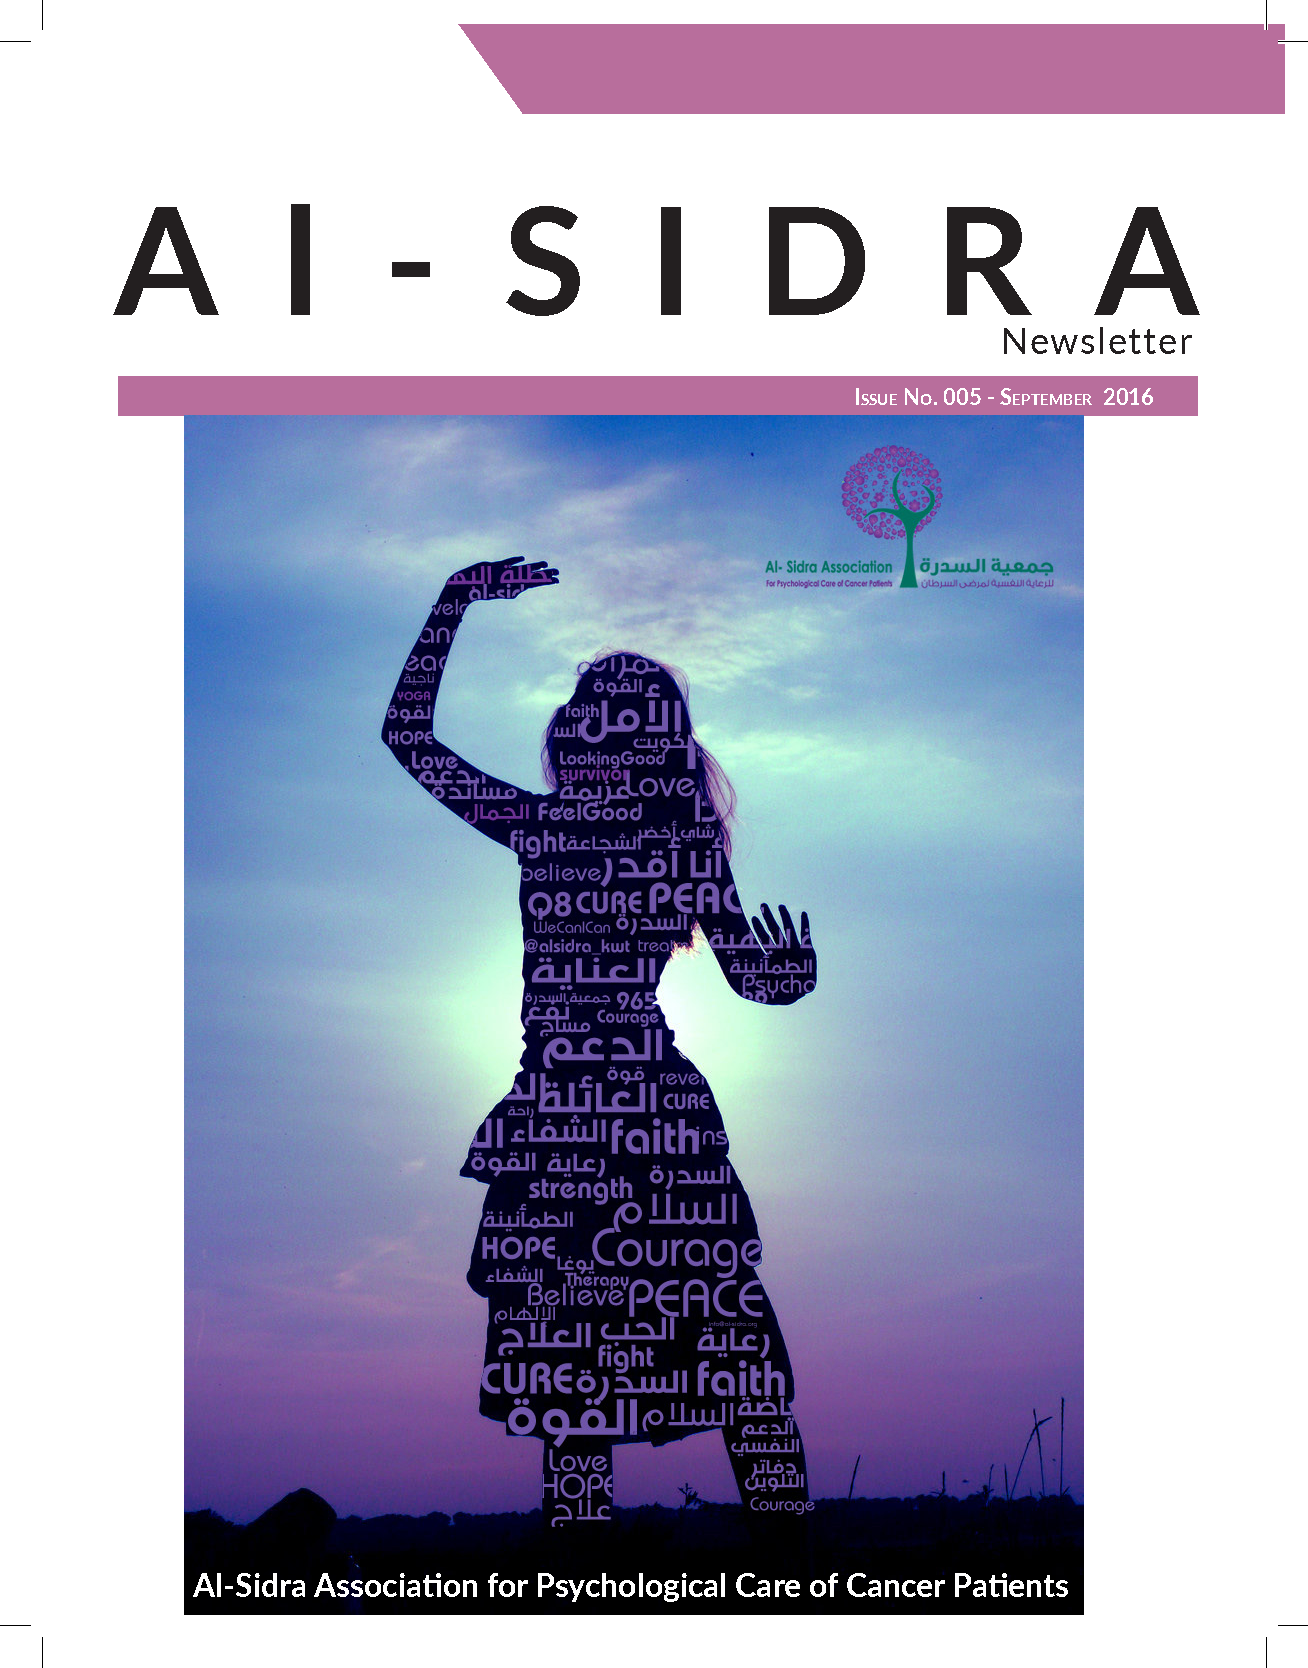 Al-Sidra Newsletter 5th edition